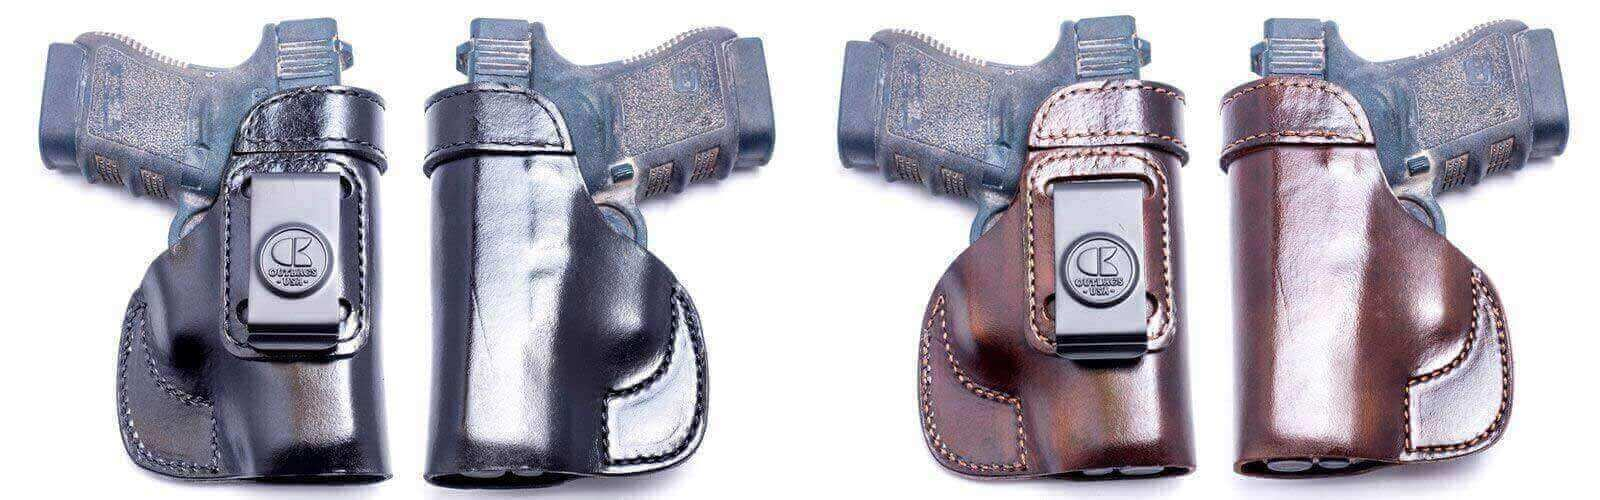 quality leather holster